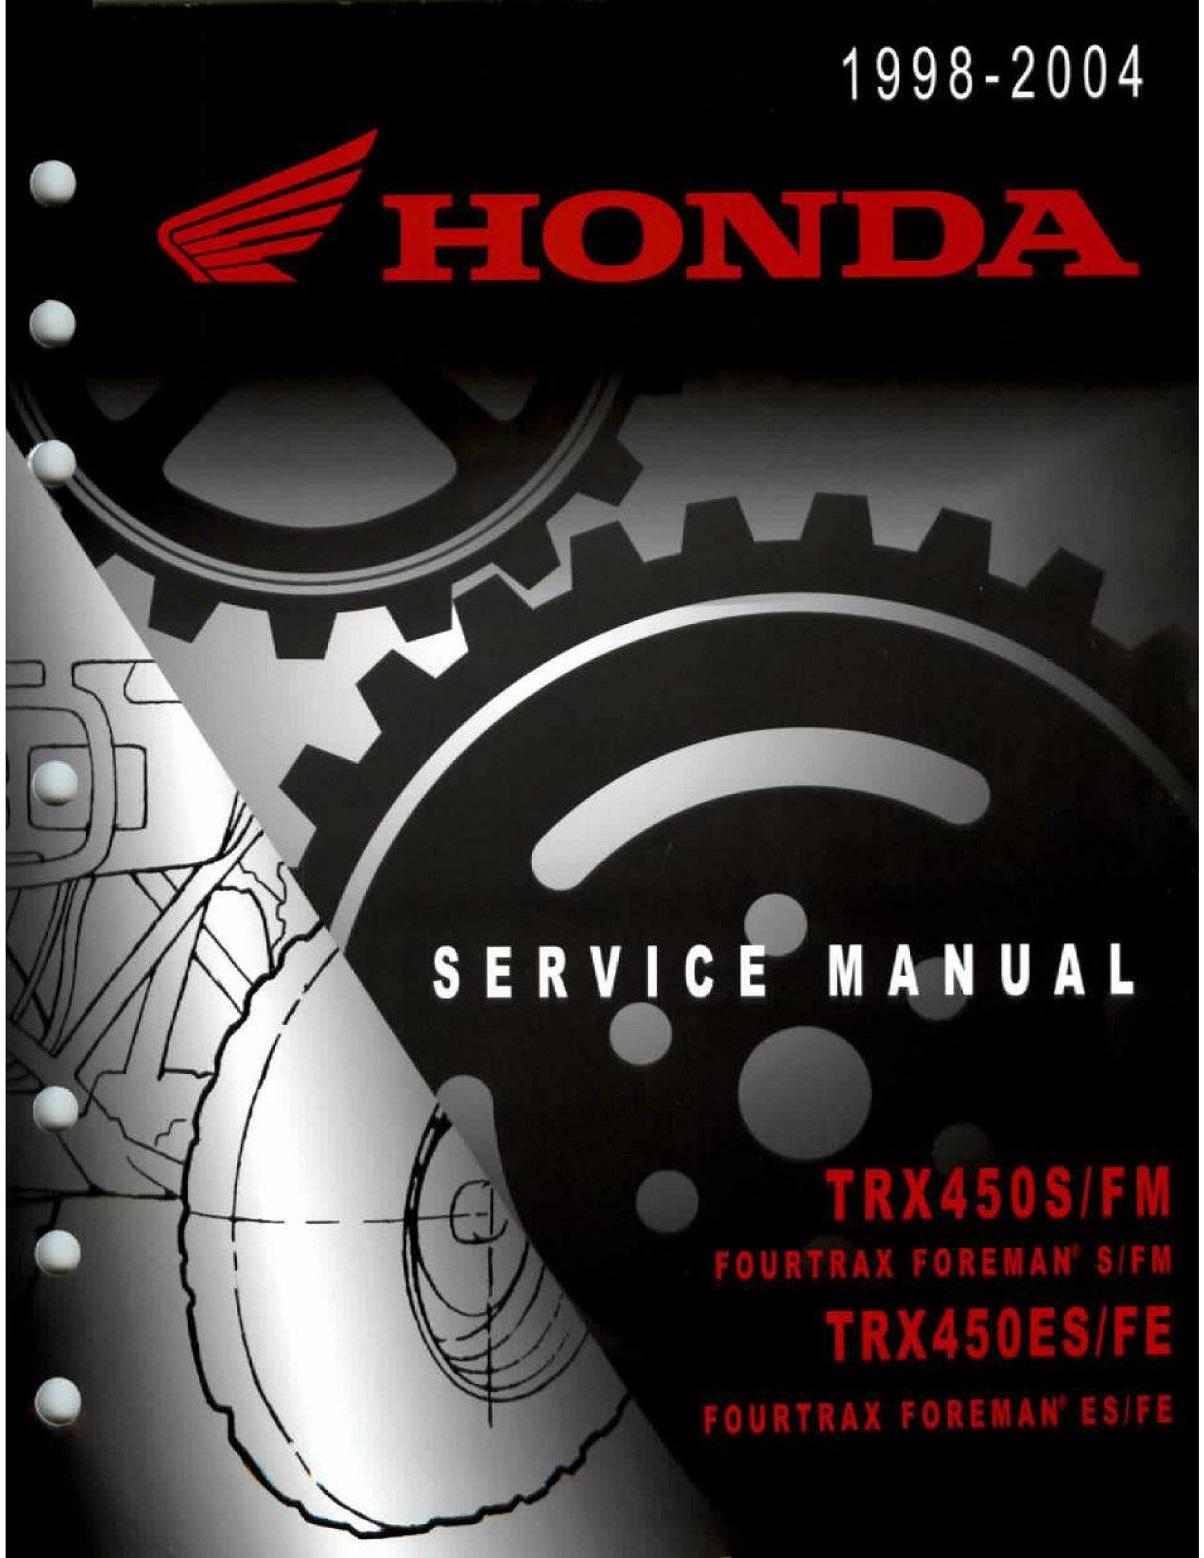 Workshop Manual for Honda TRX450S (1998-2004)